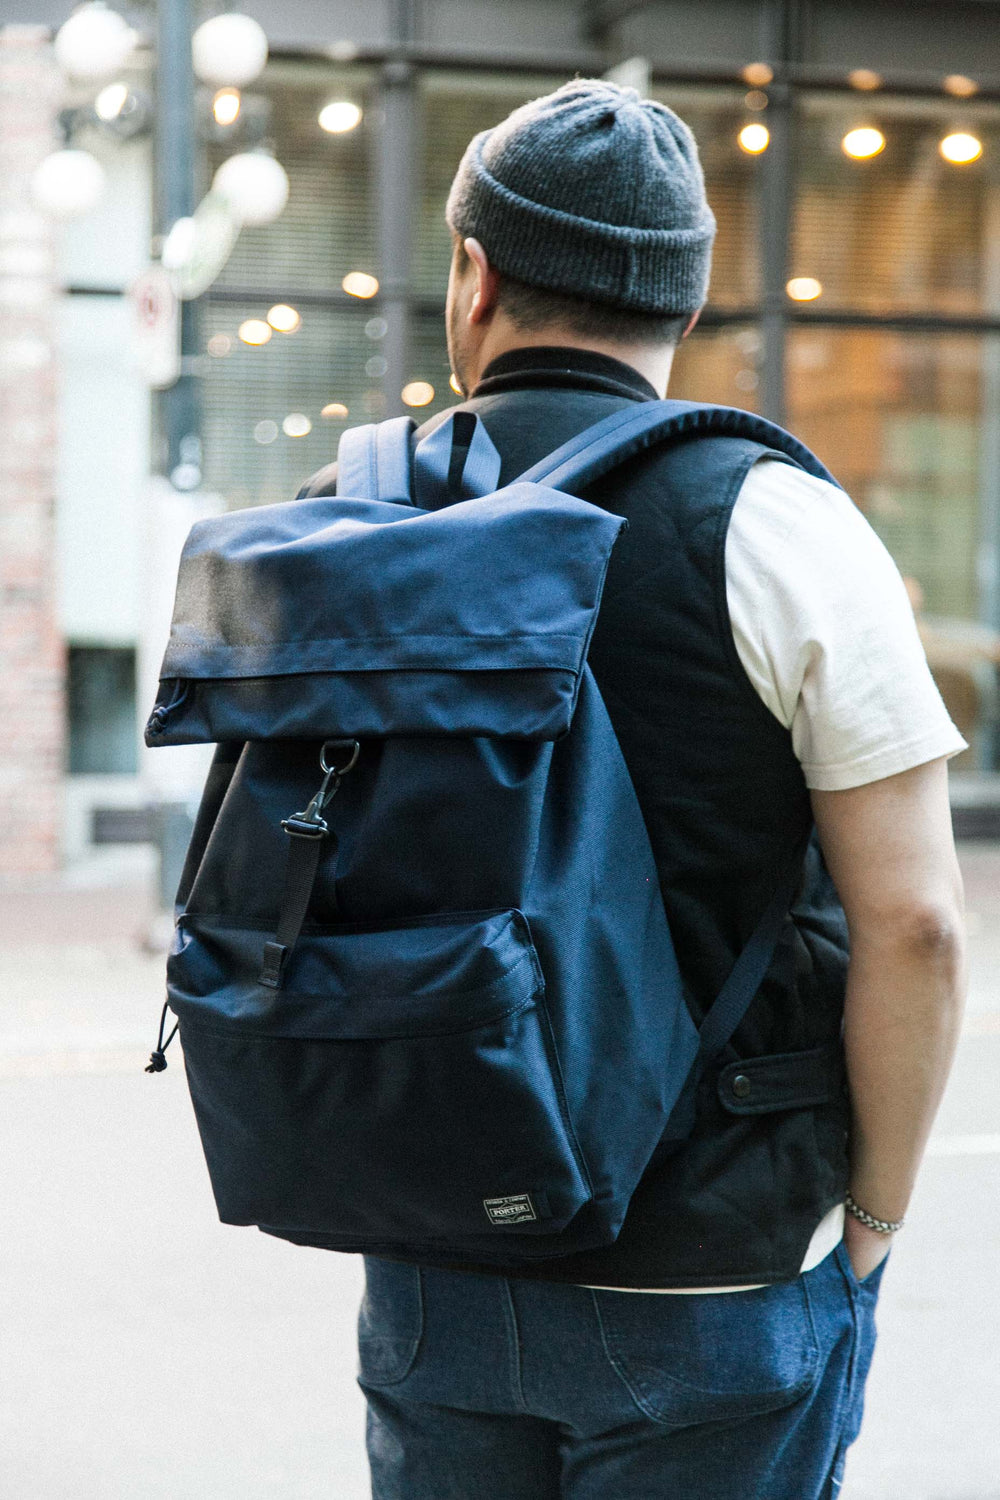 [KAPTAIN SUNSHINE x PORTER] DAY TRIPPER - NAVY